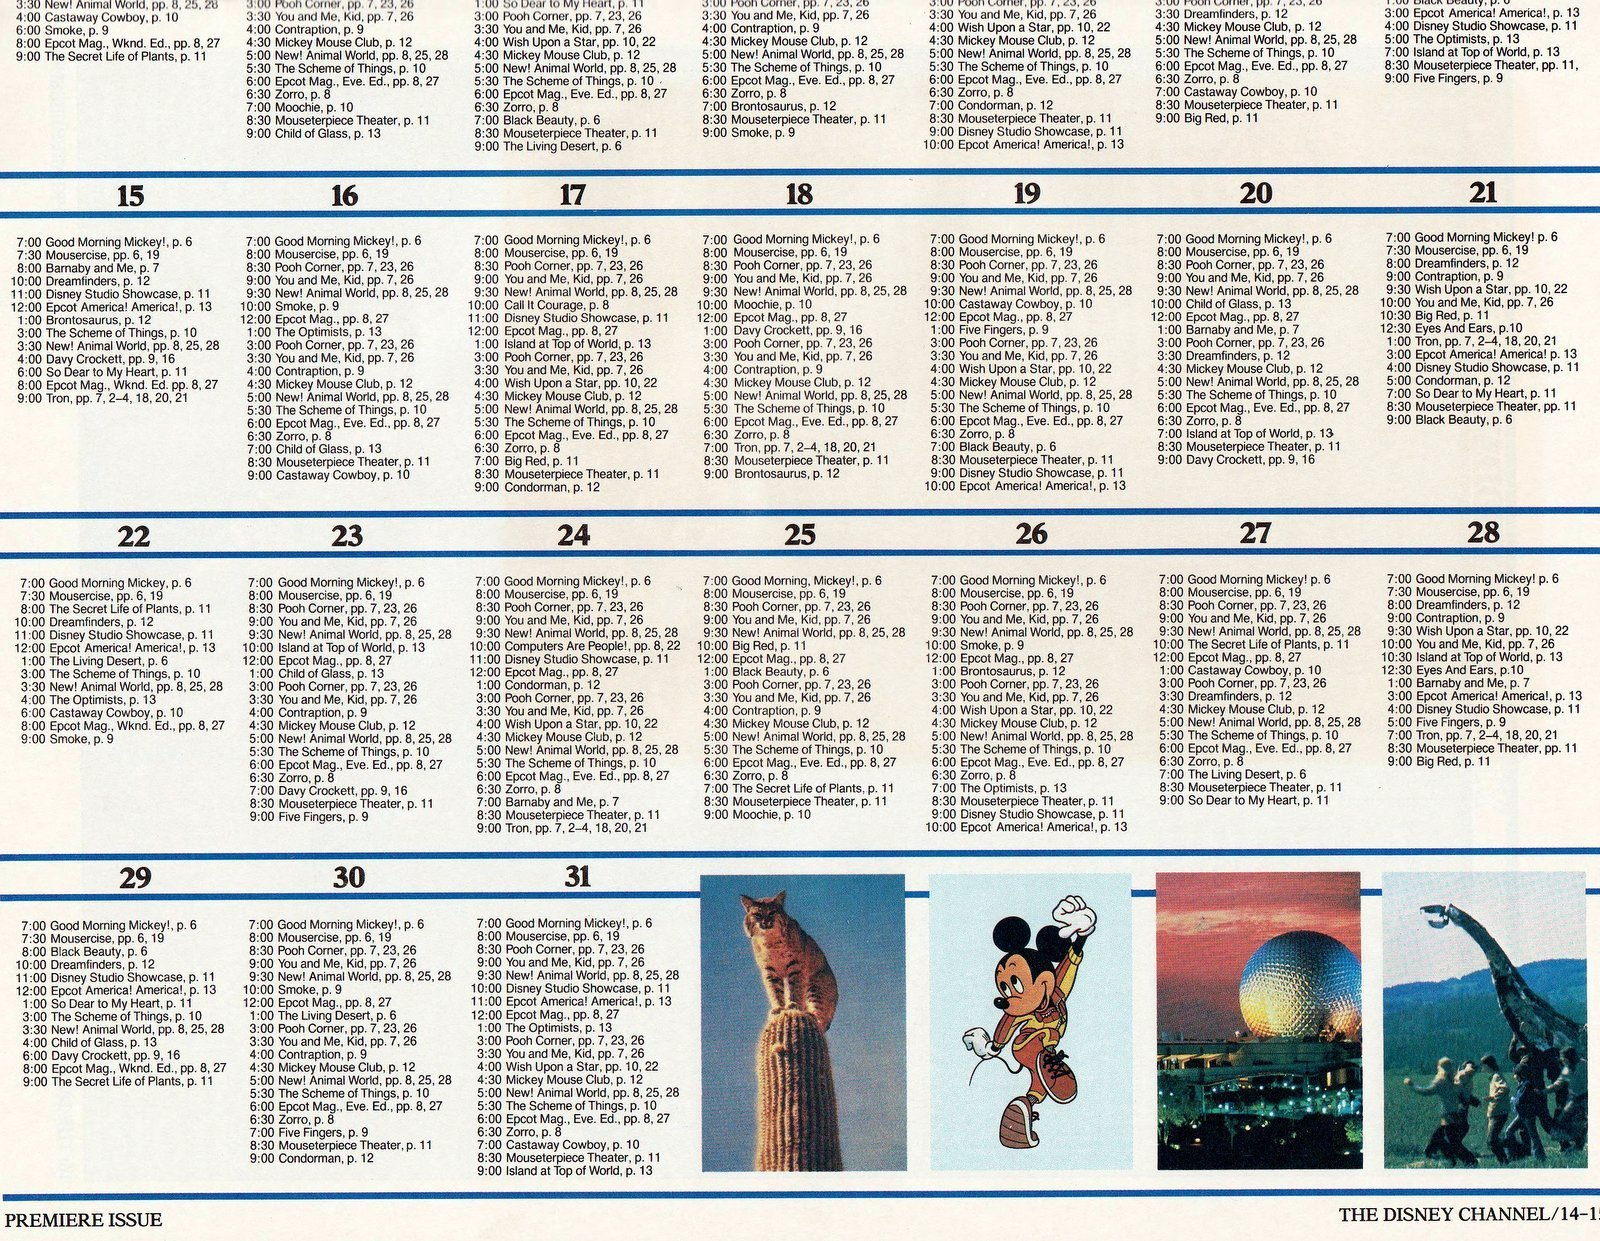 Old Disney Channel programming schedule from 1983 (1)